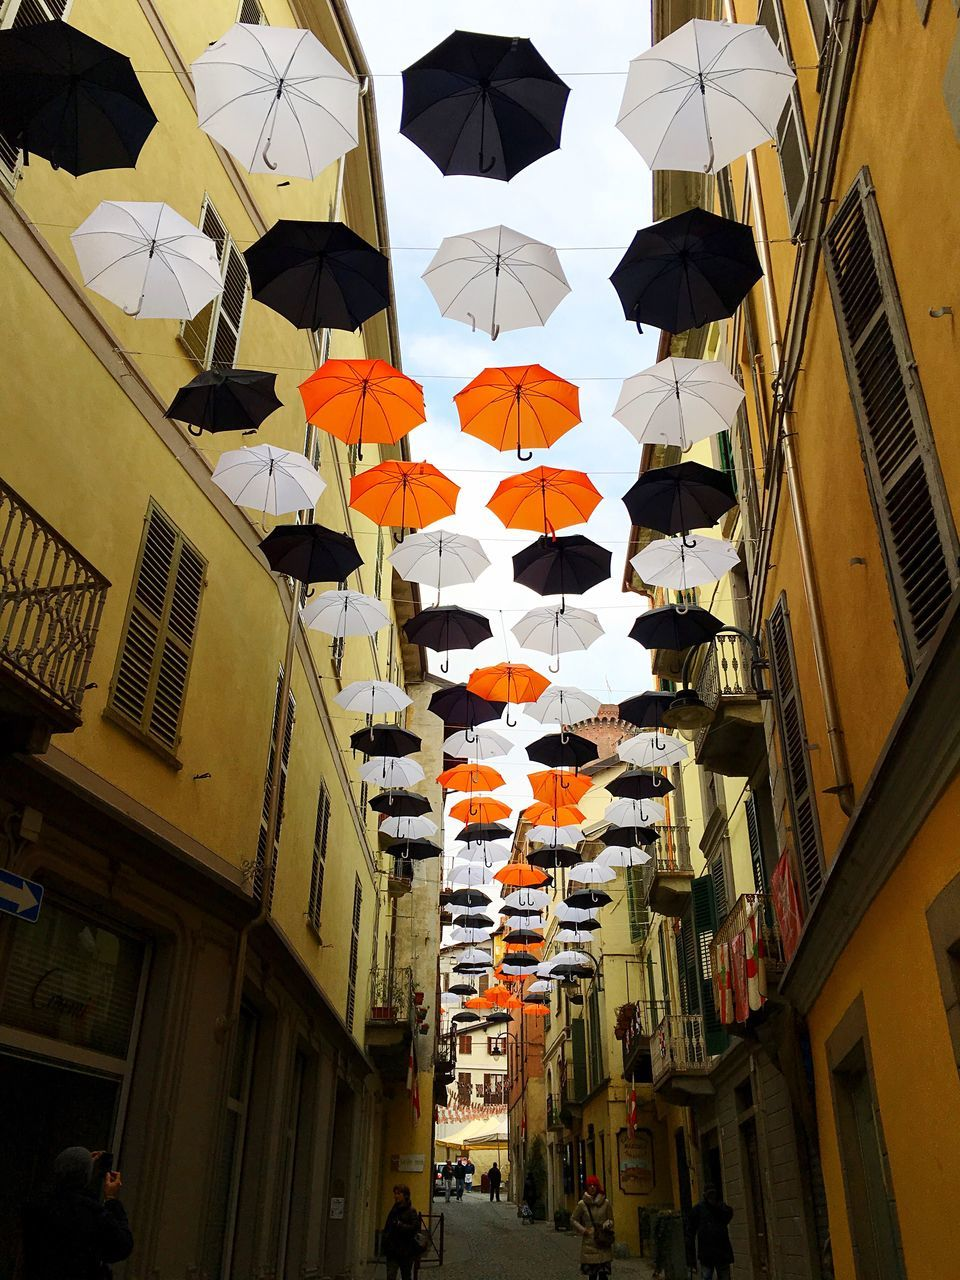 Low Angle View Of Umbrellas Amid Buildings